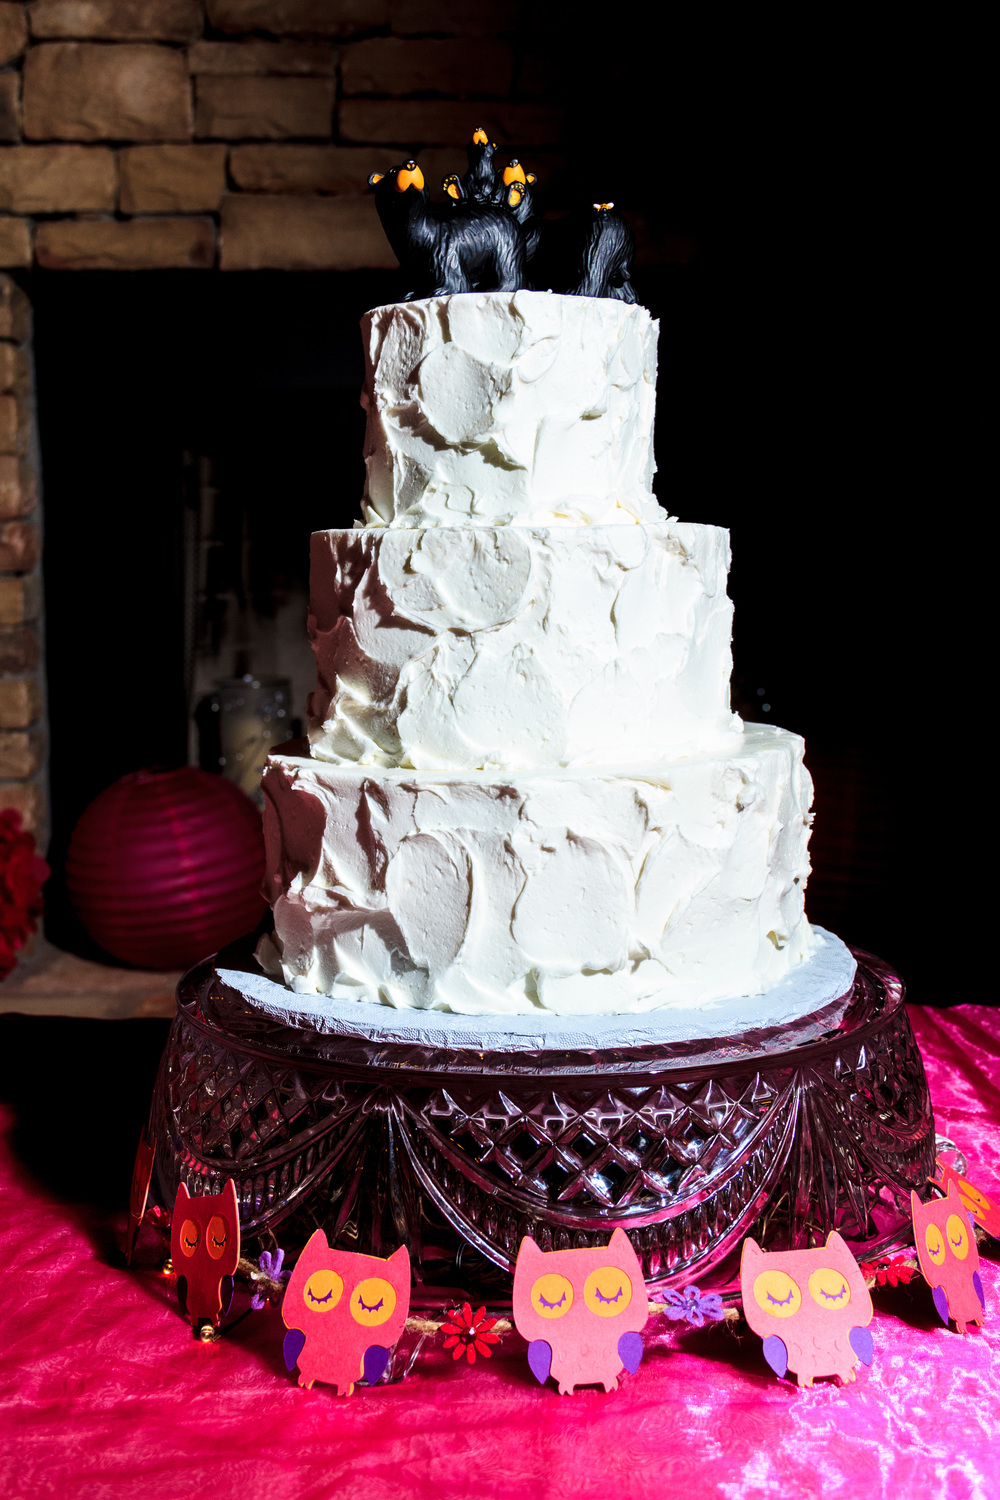 Textured Wedding Cake.  Topper not included.